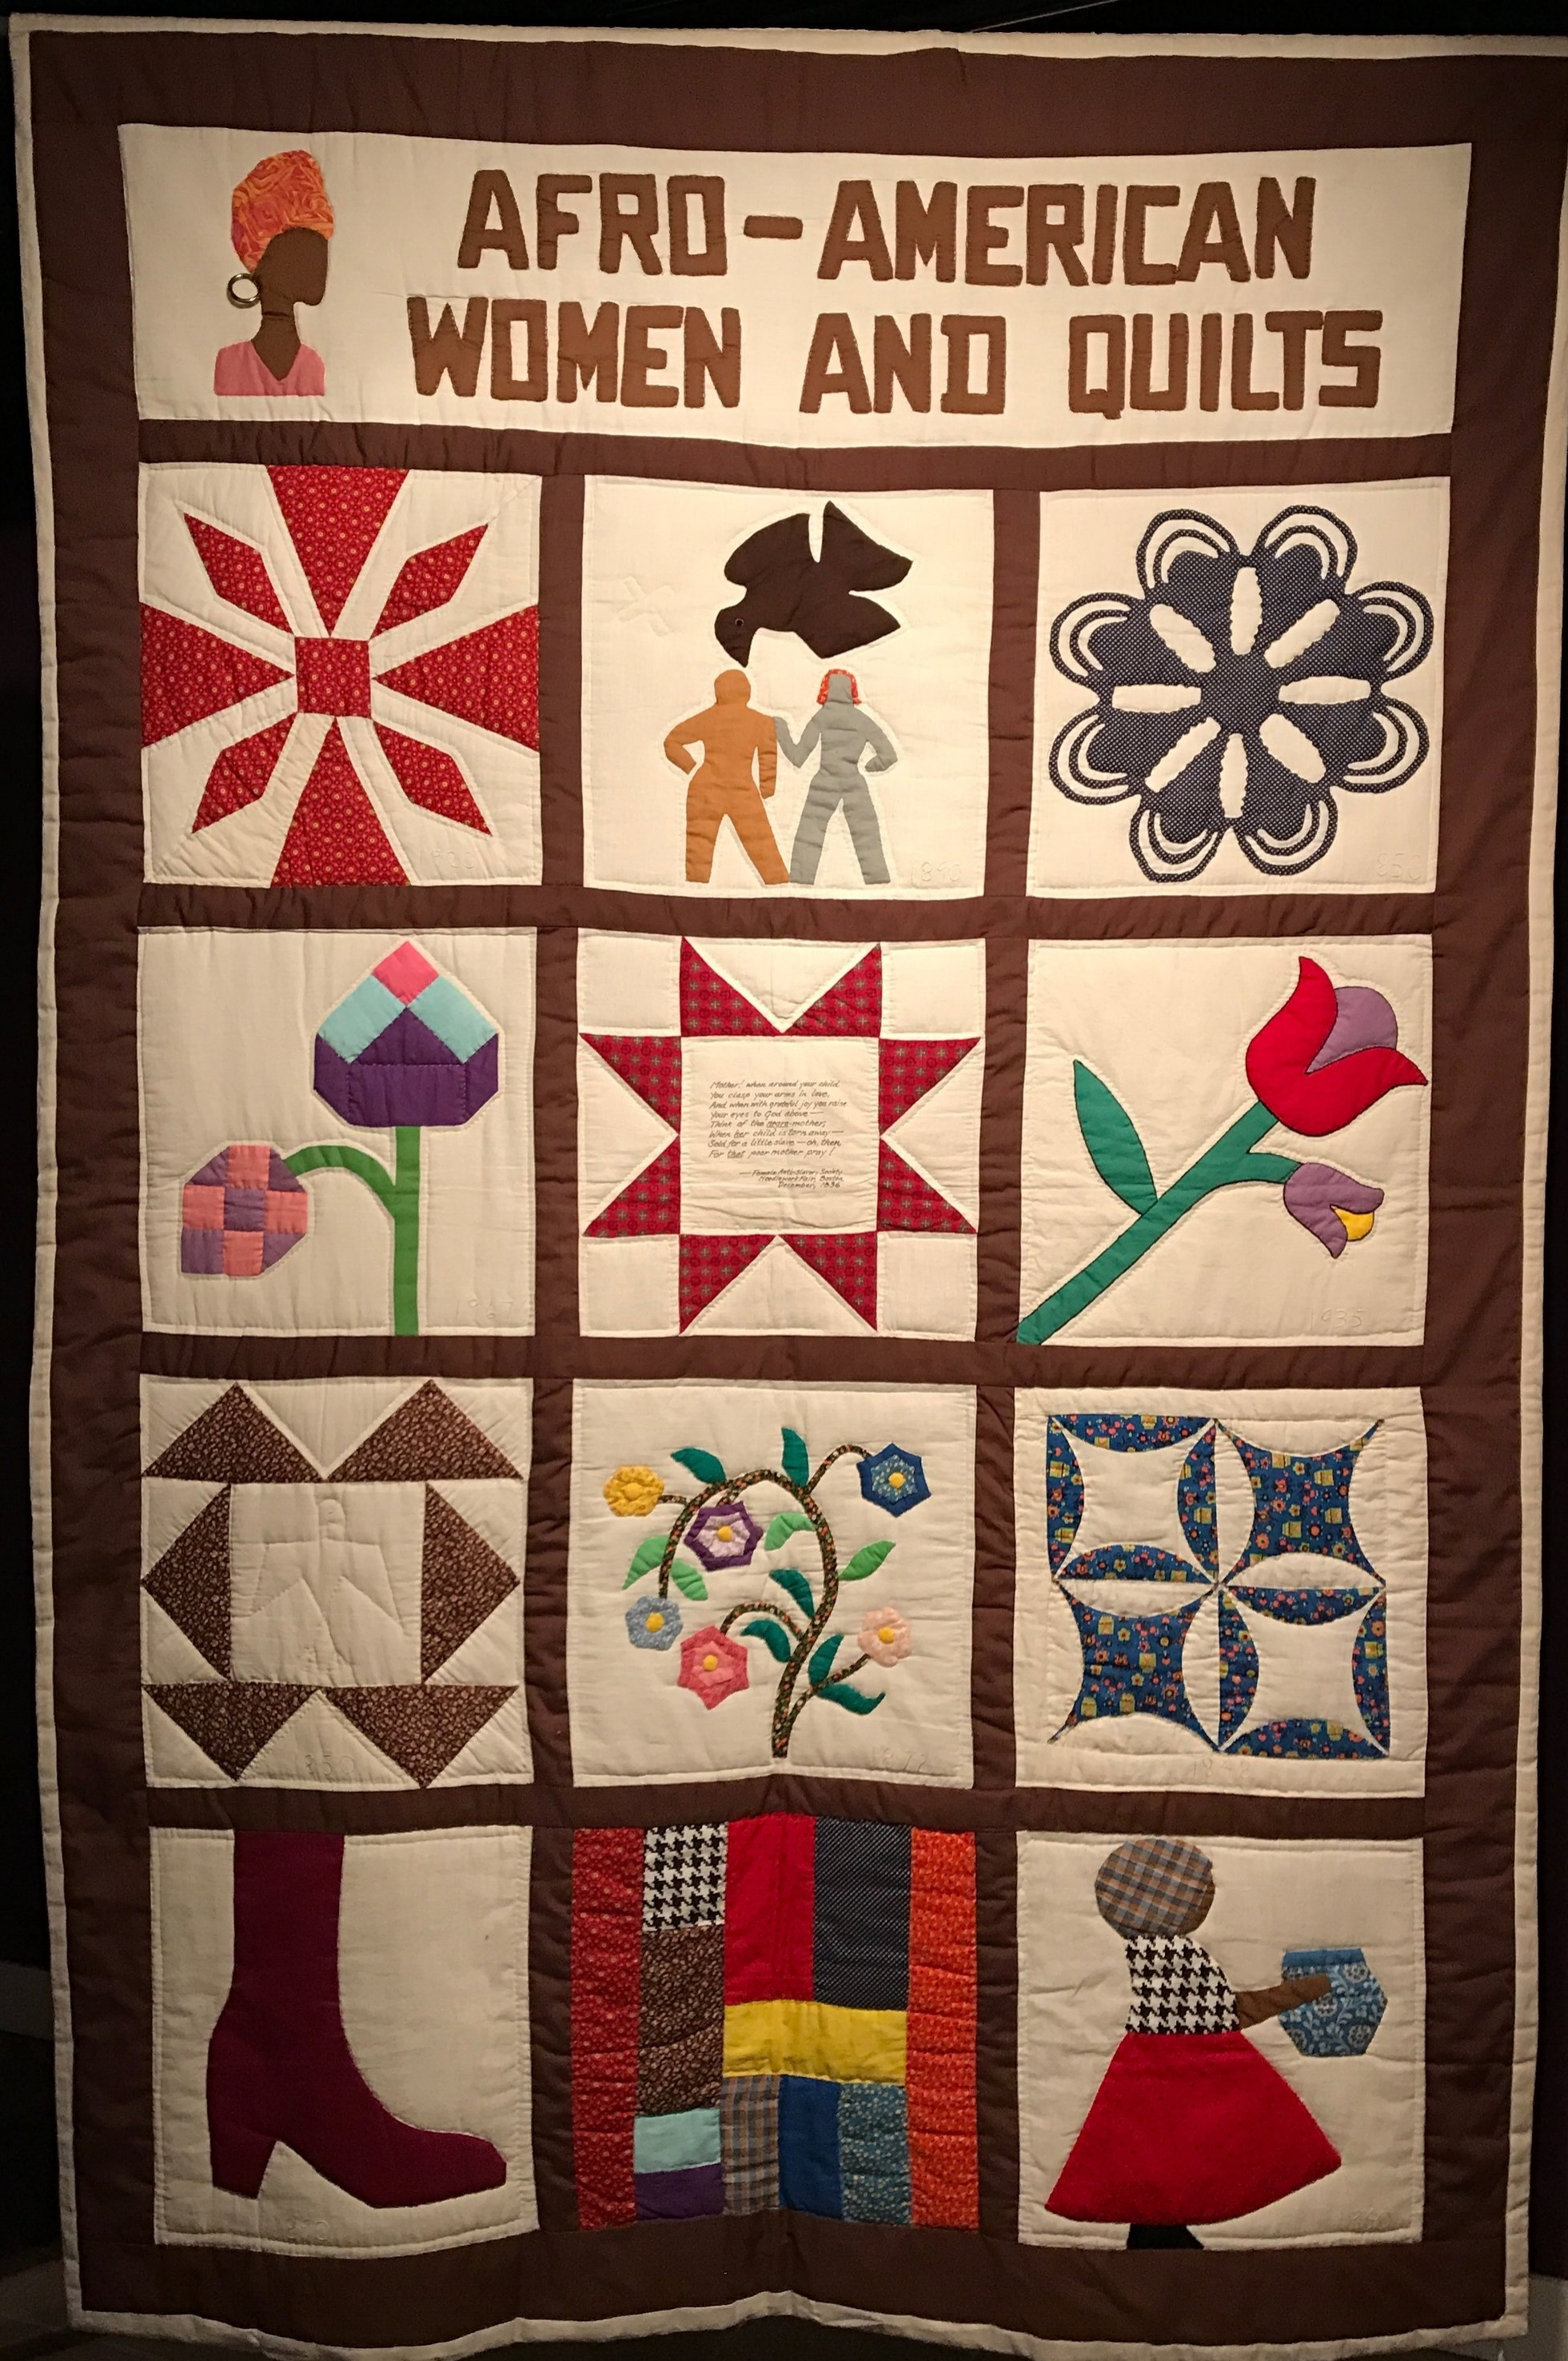 This is the one quilt in the exhibit that Cuesta made herself. Quilting has a rich history in America and in the African-American community.It contains elements from some of the other quilts on display, like the W.P.A. tulip quilt. It's hard to see in this photograph, but each block has the date the quilt it's inspired by was made stitched in. (The shoe is from 1890.)